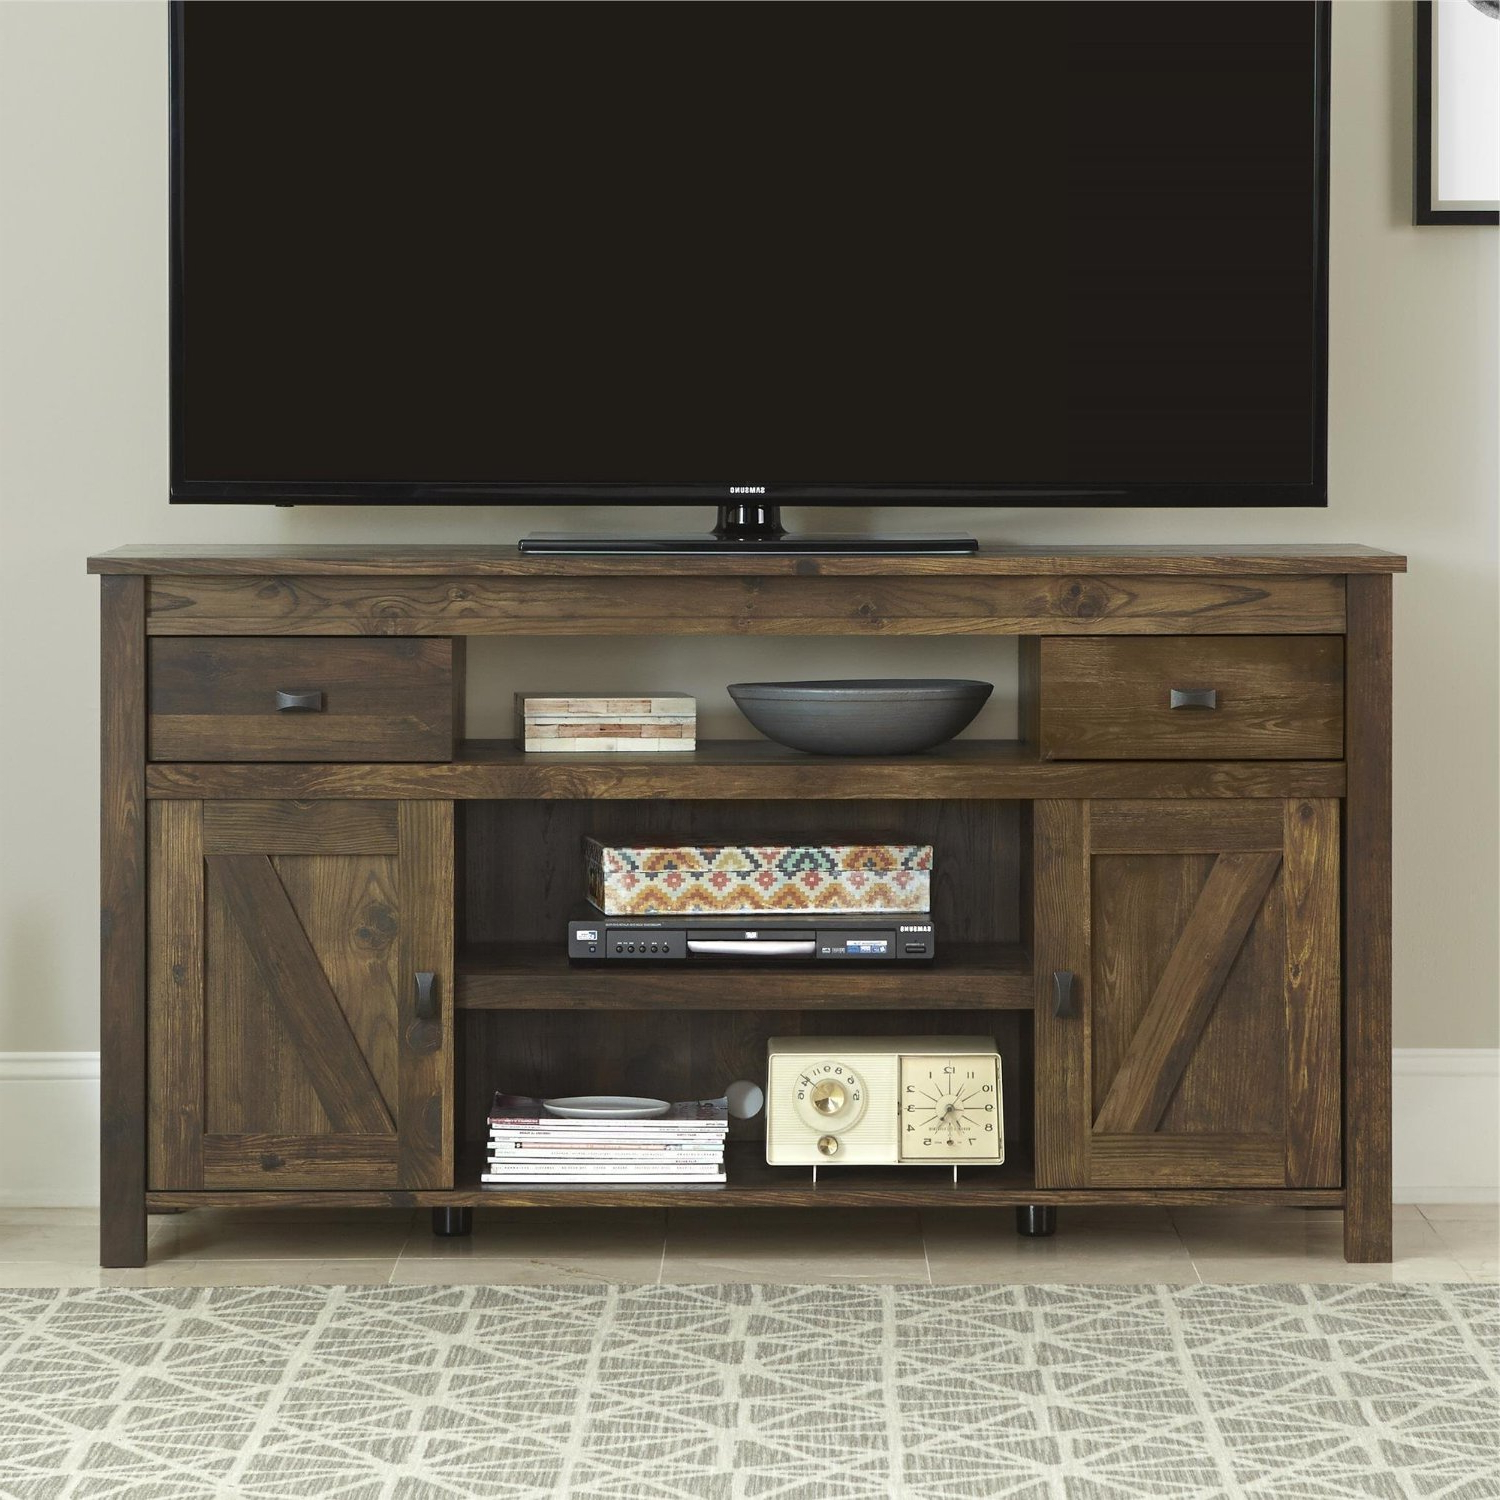 84 Inch Tv Stands Throughout Most Recent Cheap 84 Inch Tv Stand, Find 84 Inch Tv Stand Deals On Line At (Gallery 13 of 20)